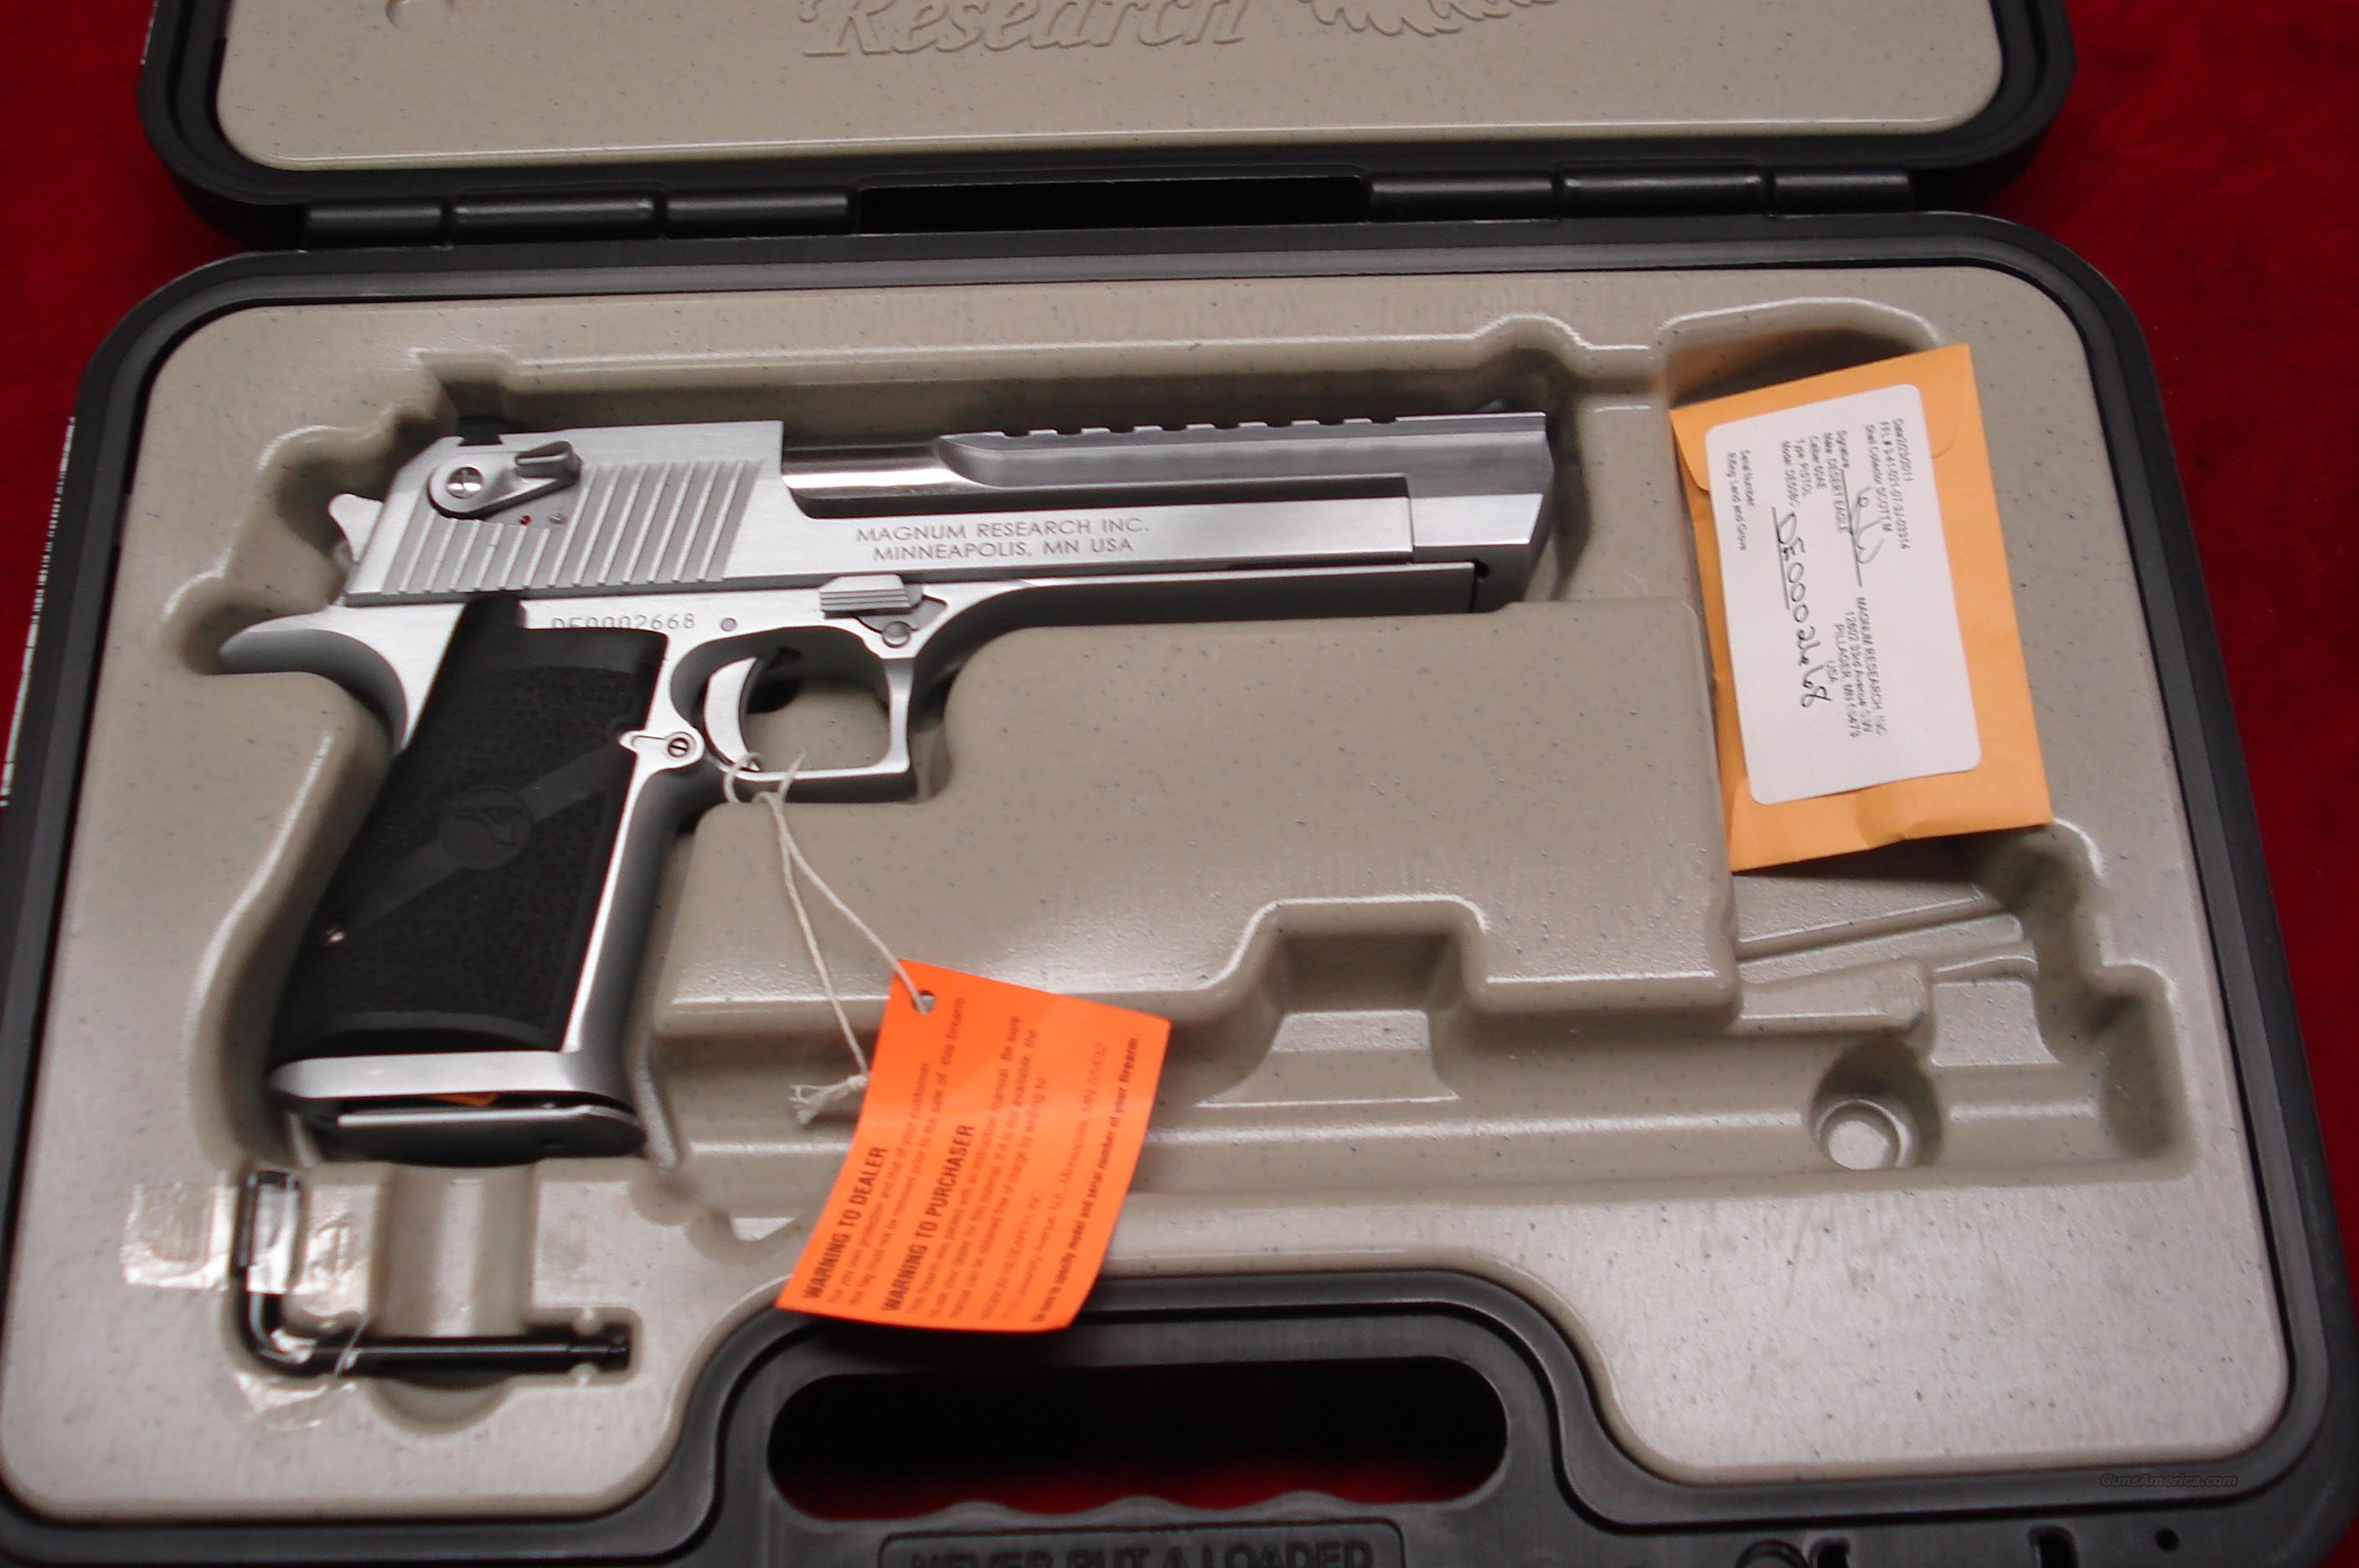 "MAGNUM RESEARCH DESERT EAGLE 50AE 6"" BRUSHED CHROME NEW   Guns > Pistols > Desert Eagle/IMI Pistols > Desert Eagle"